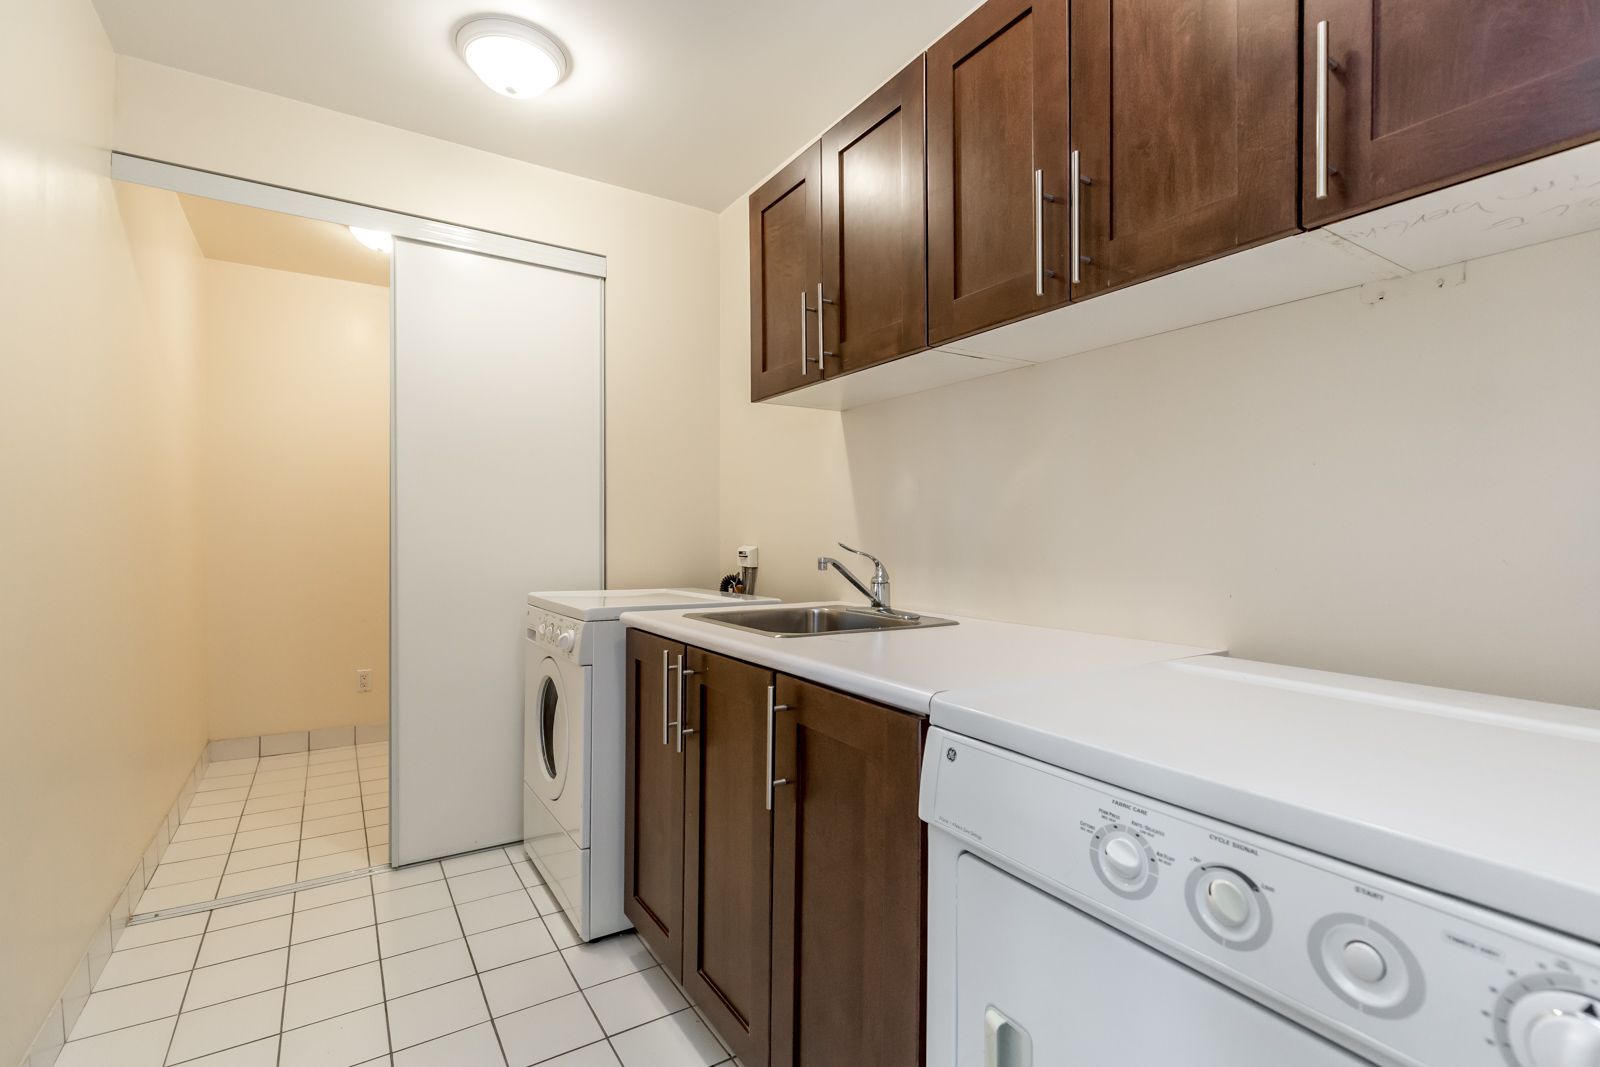 Photo of 761 Bay Street's laundry room